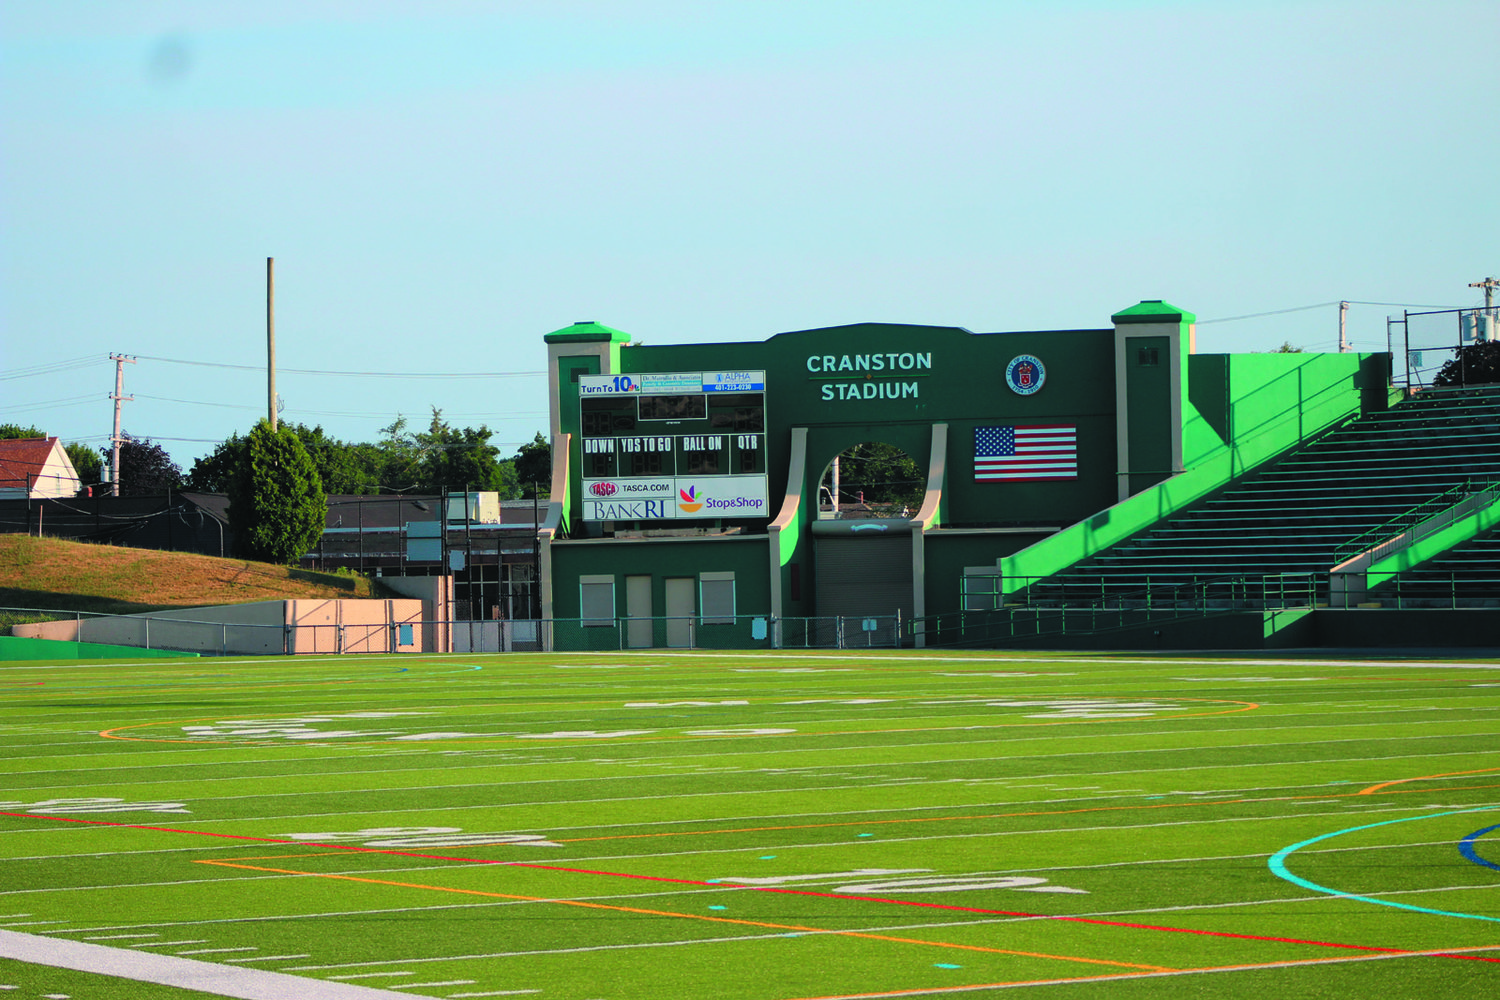 WAITING TO PLAY: A look at Cranston Stadium. The RIIL made a statement on Monday stating that it is still hopeful to have a fall sports season and has begun exploring ways of ensuring a safe environment for student-athletes.